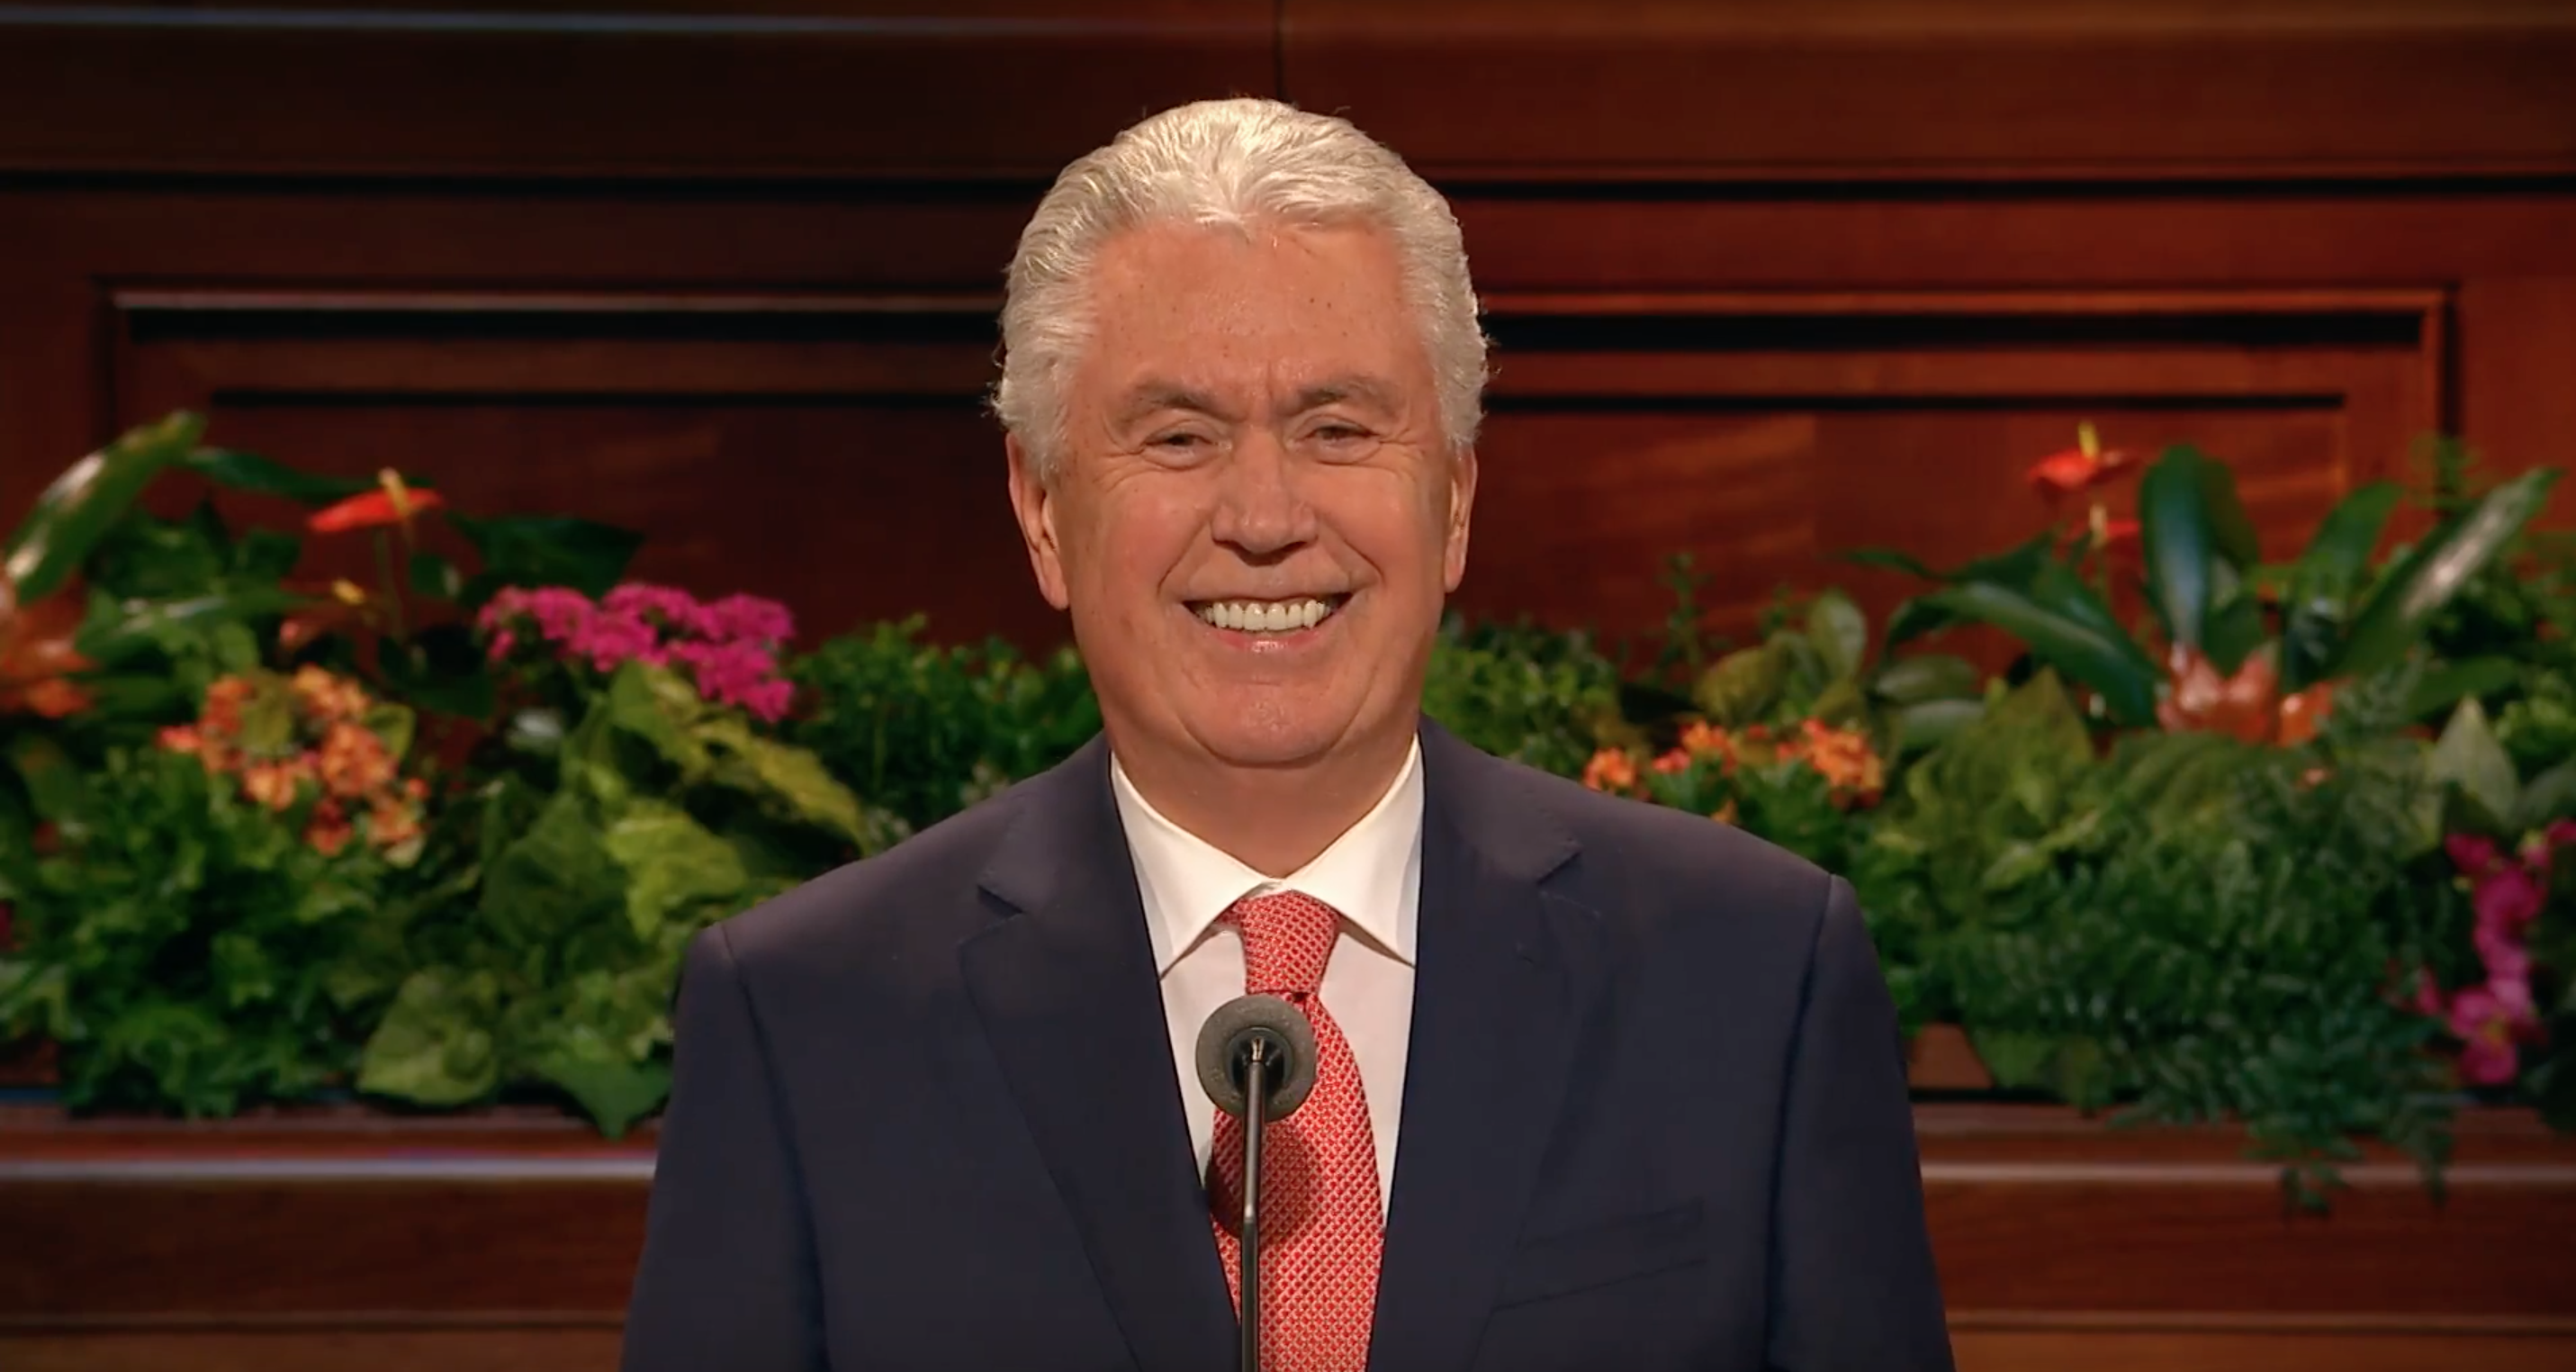 Elder Uchtdorf delivers his address during the Saturday afternoon session of October 2018 general conference.